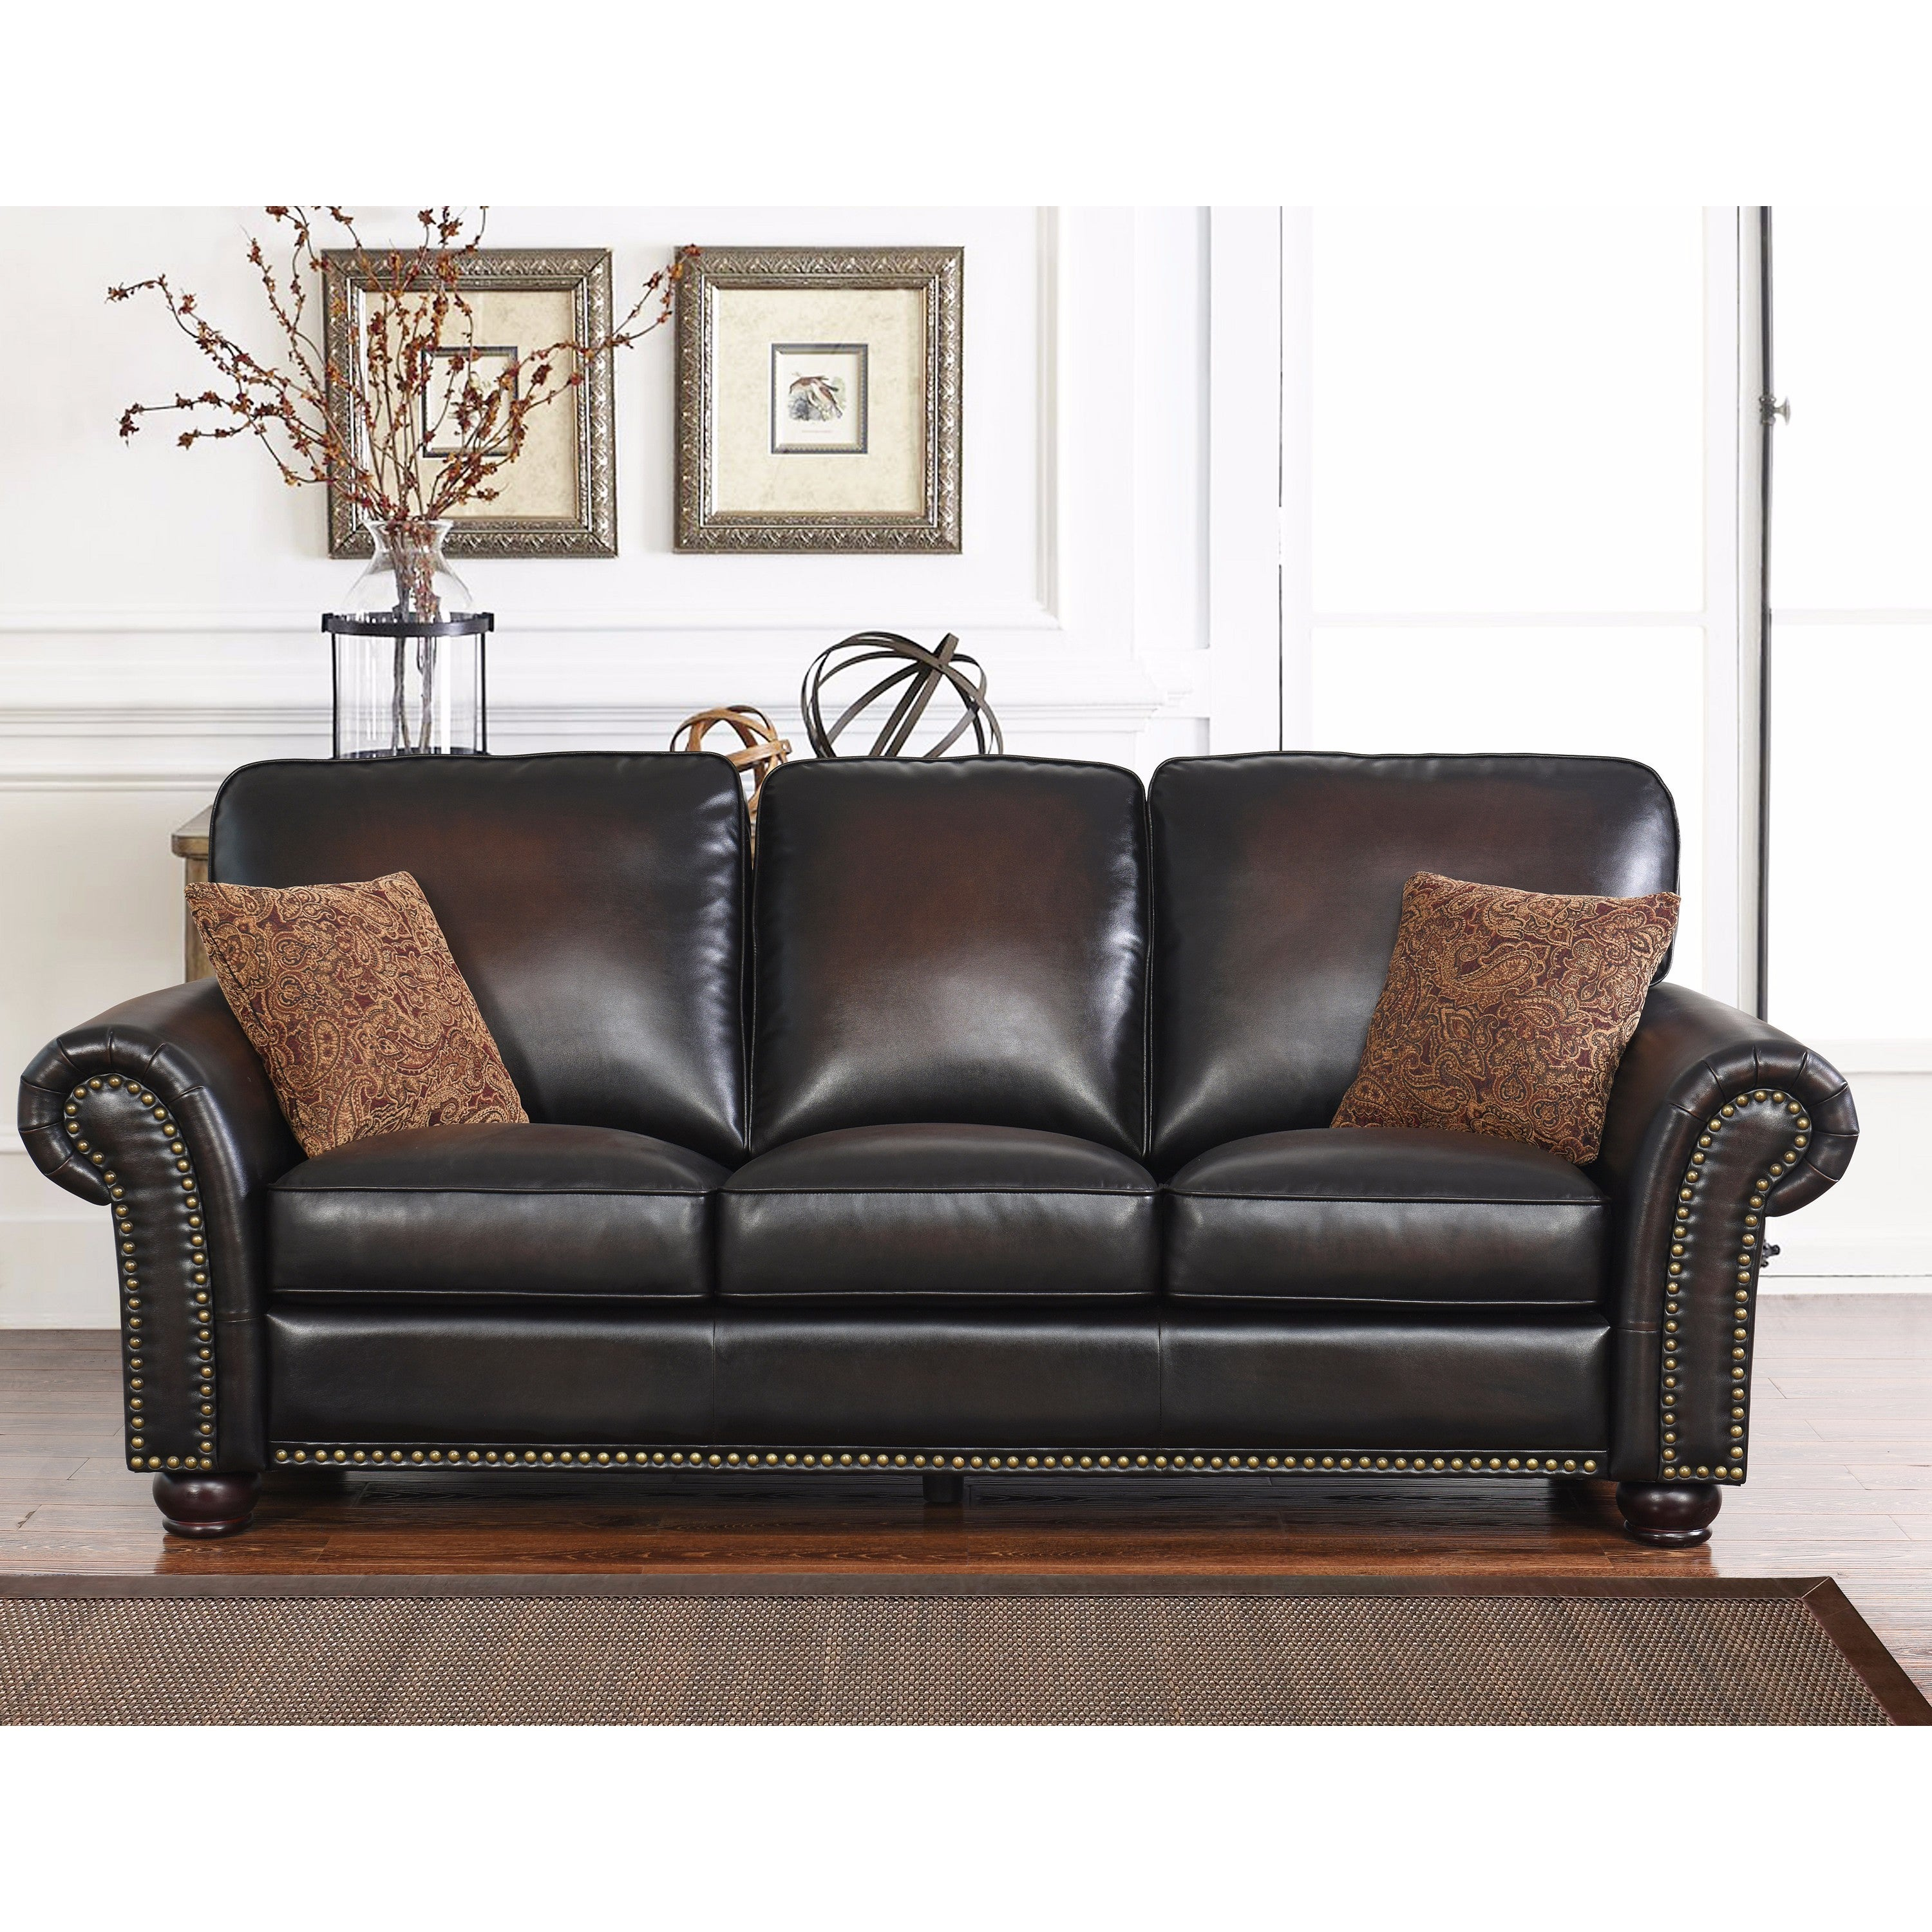 Abbyson Braxton Brown Bonded Leather Sofa